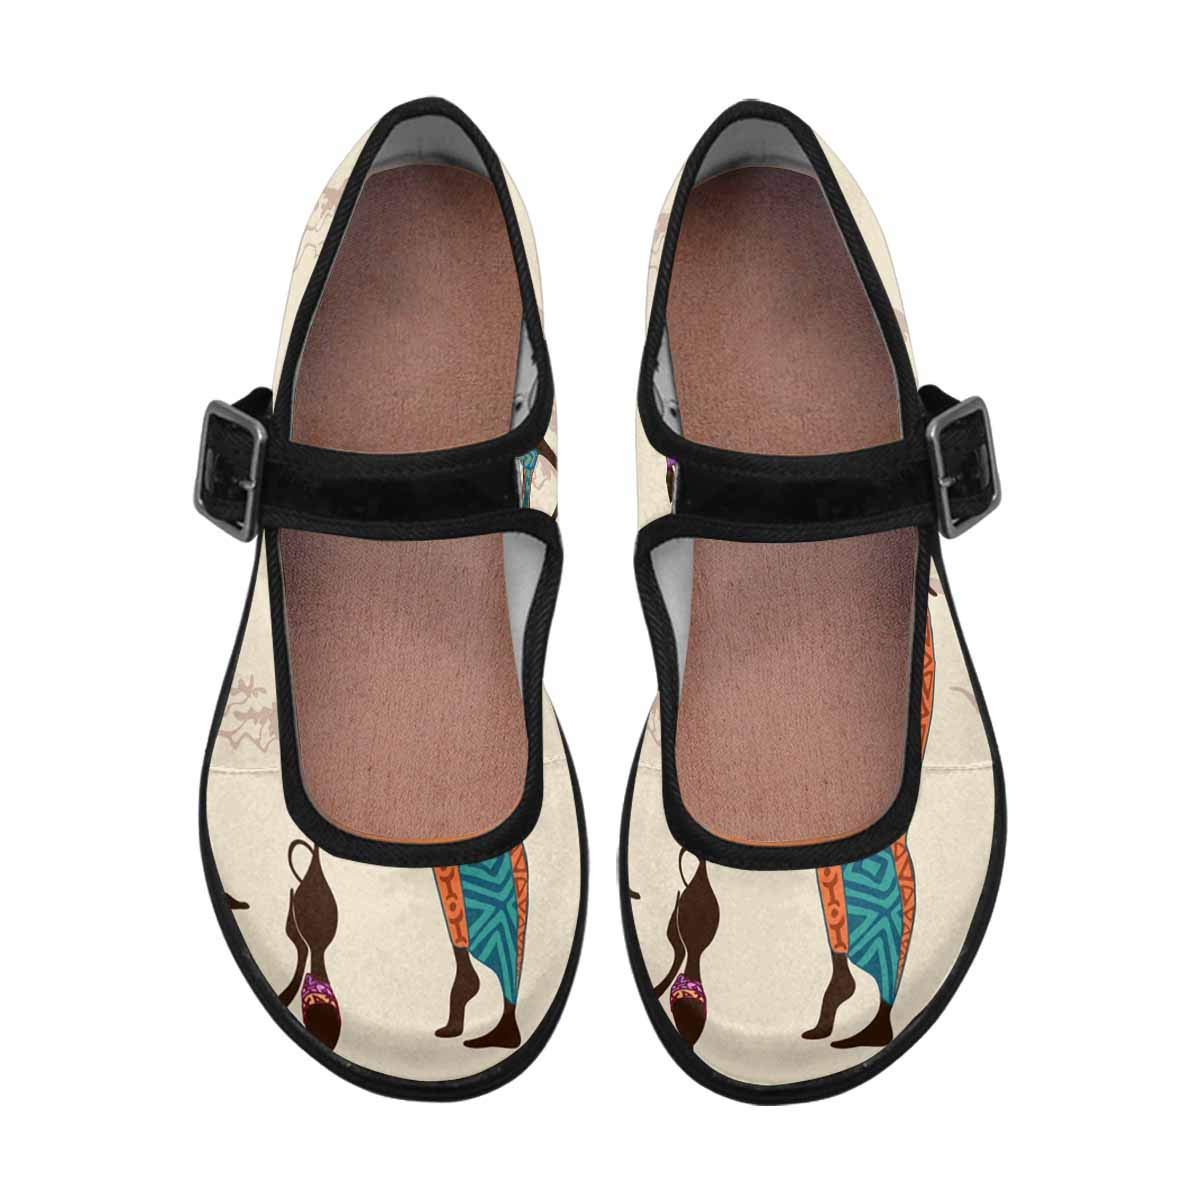 INTERESTPRINT Womens Satin Mary Jane Flats Ballet Shoes Beautiful African Women with Vases